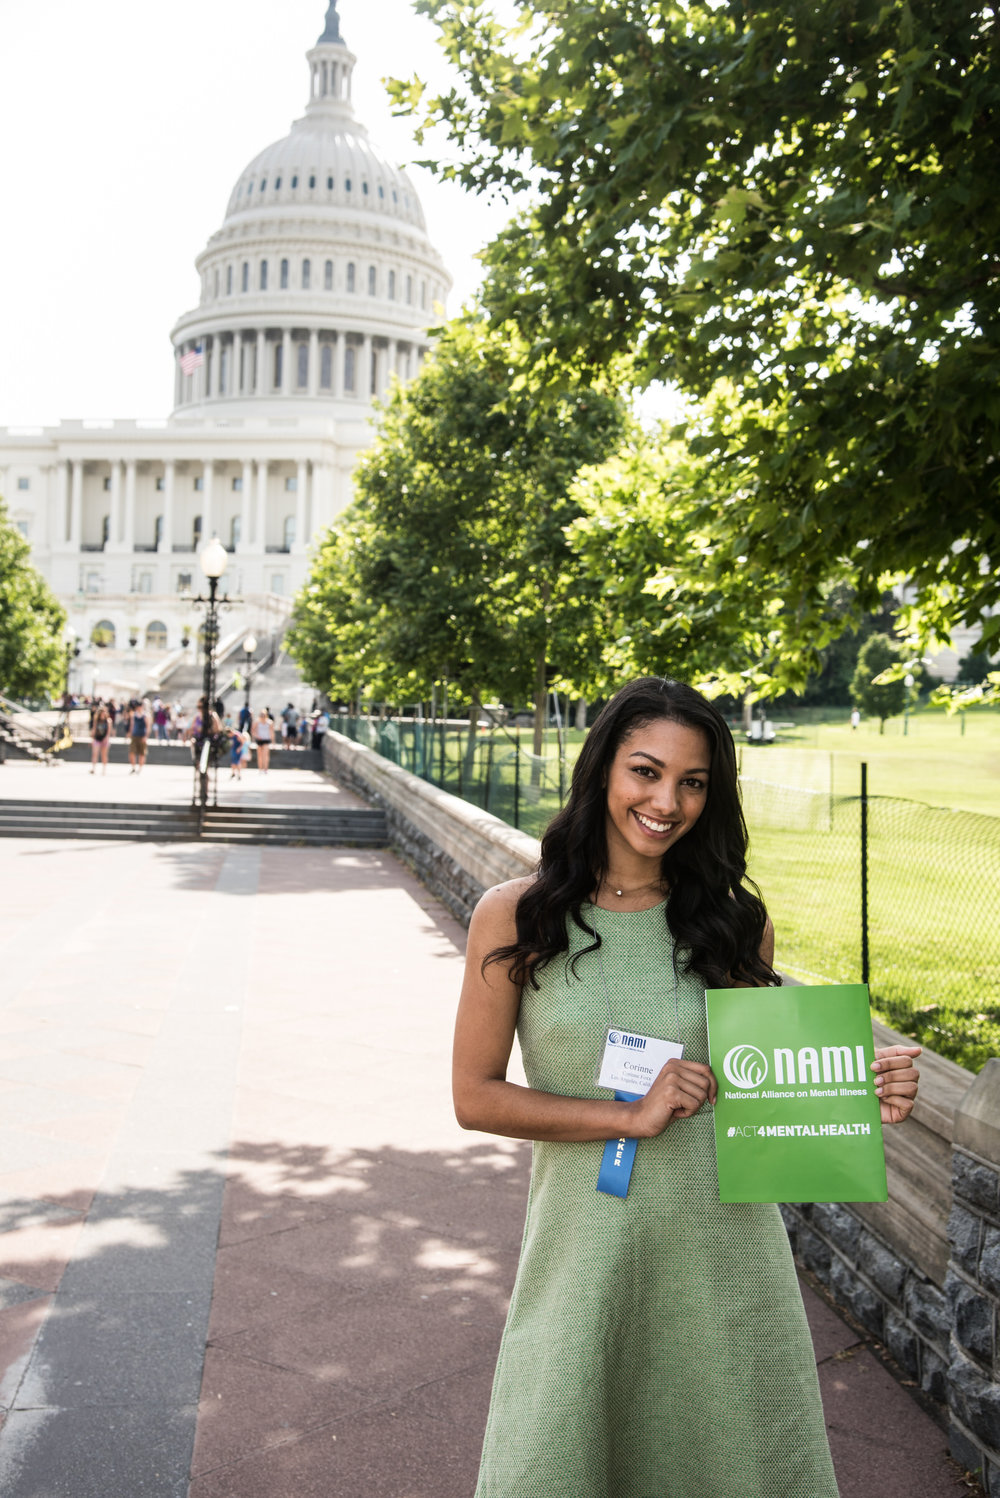 Arriving on Capitol Hill with NAMI